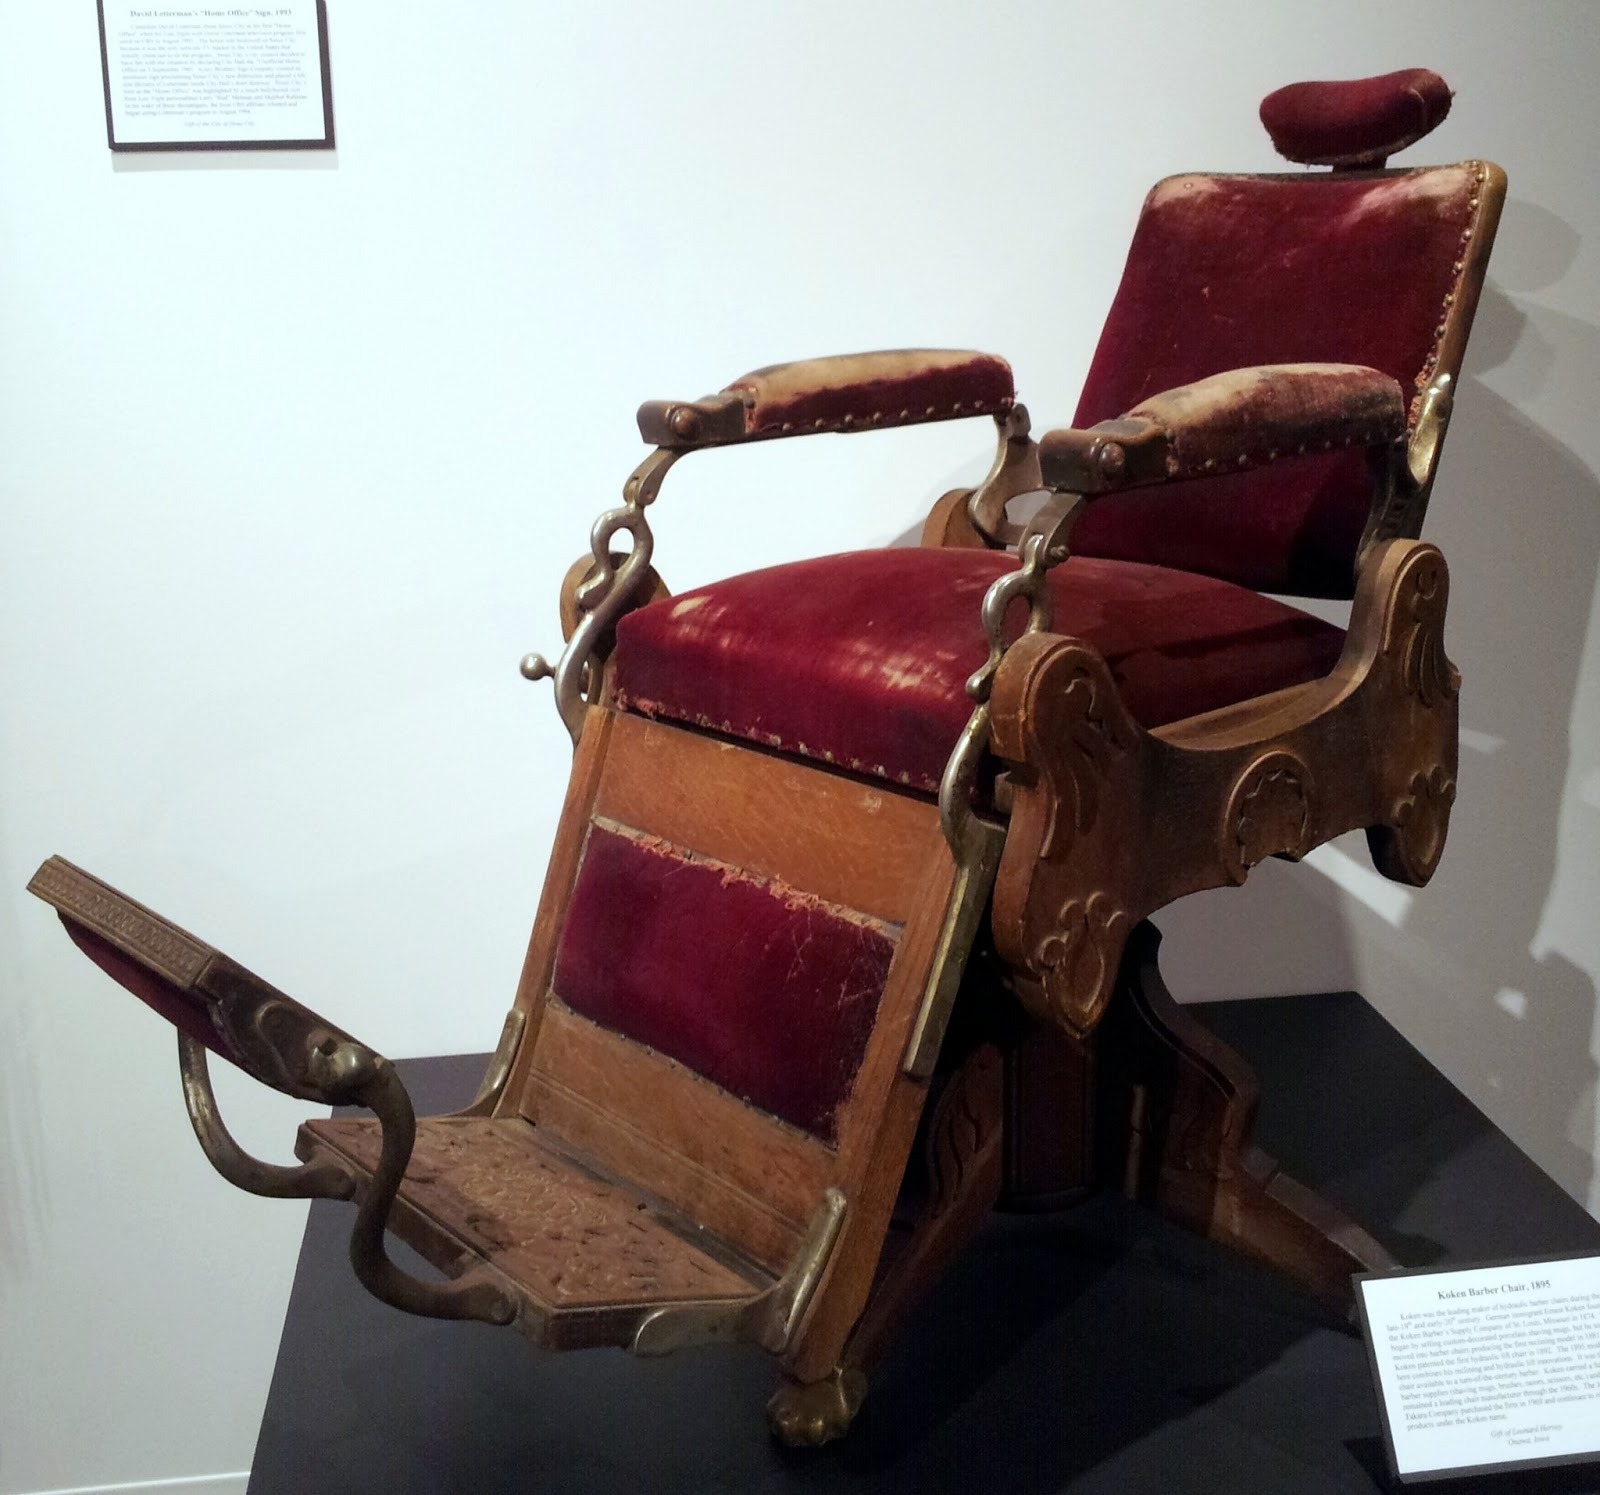 Koken Barber Chair Best Portable Picnic History And Culture By Bicycle Sioux City Public Museum